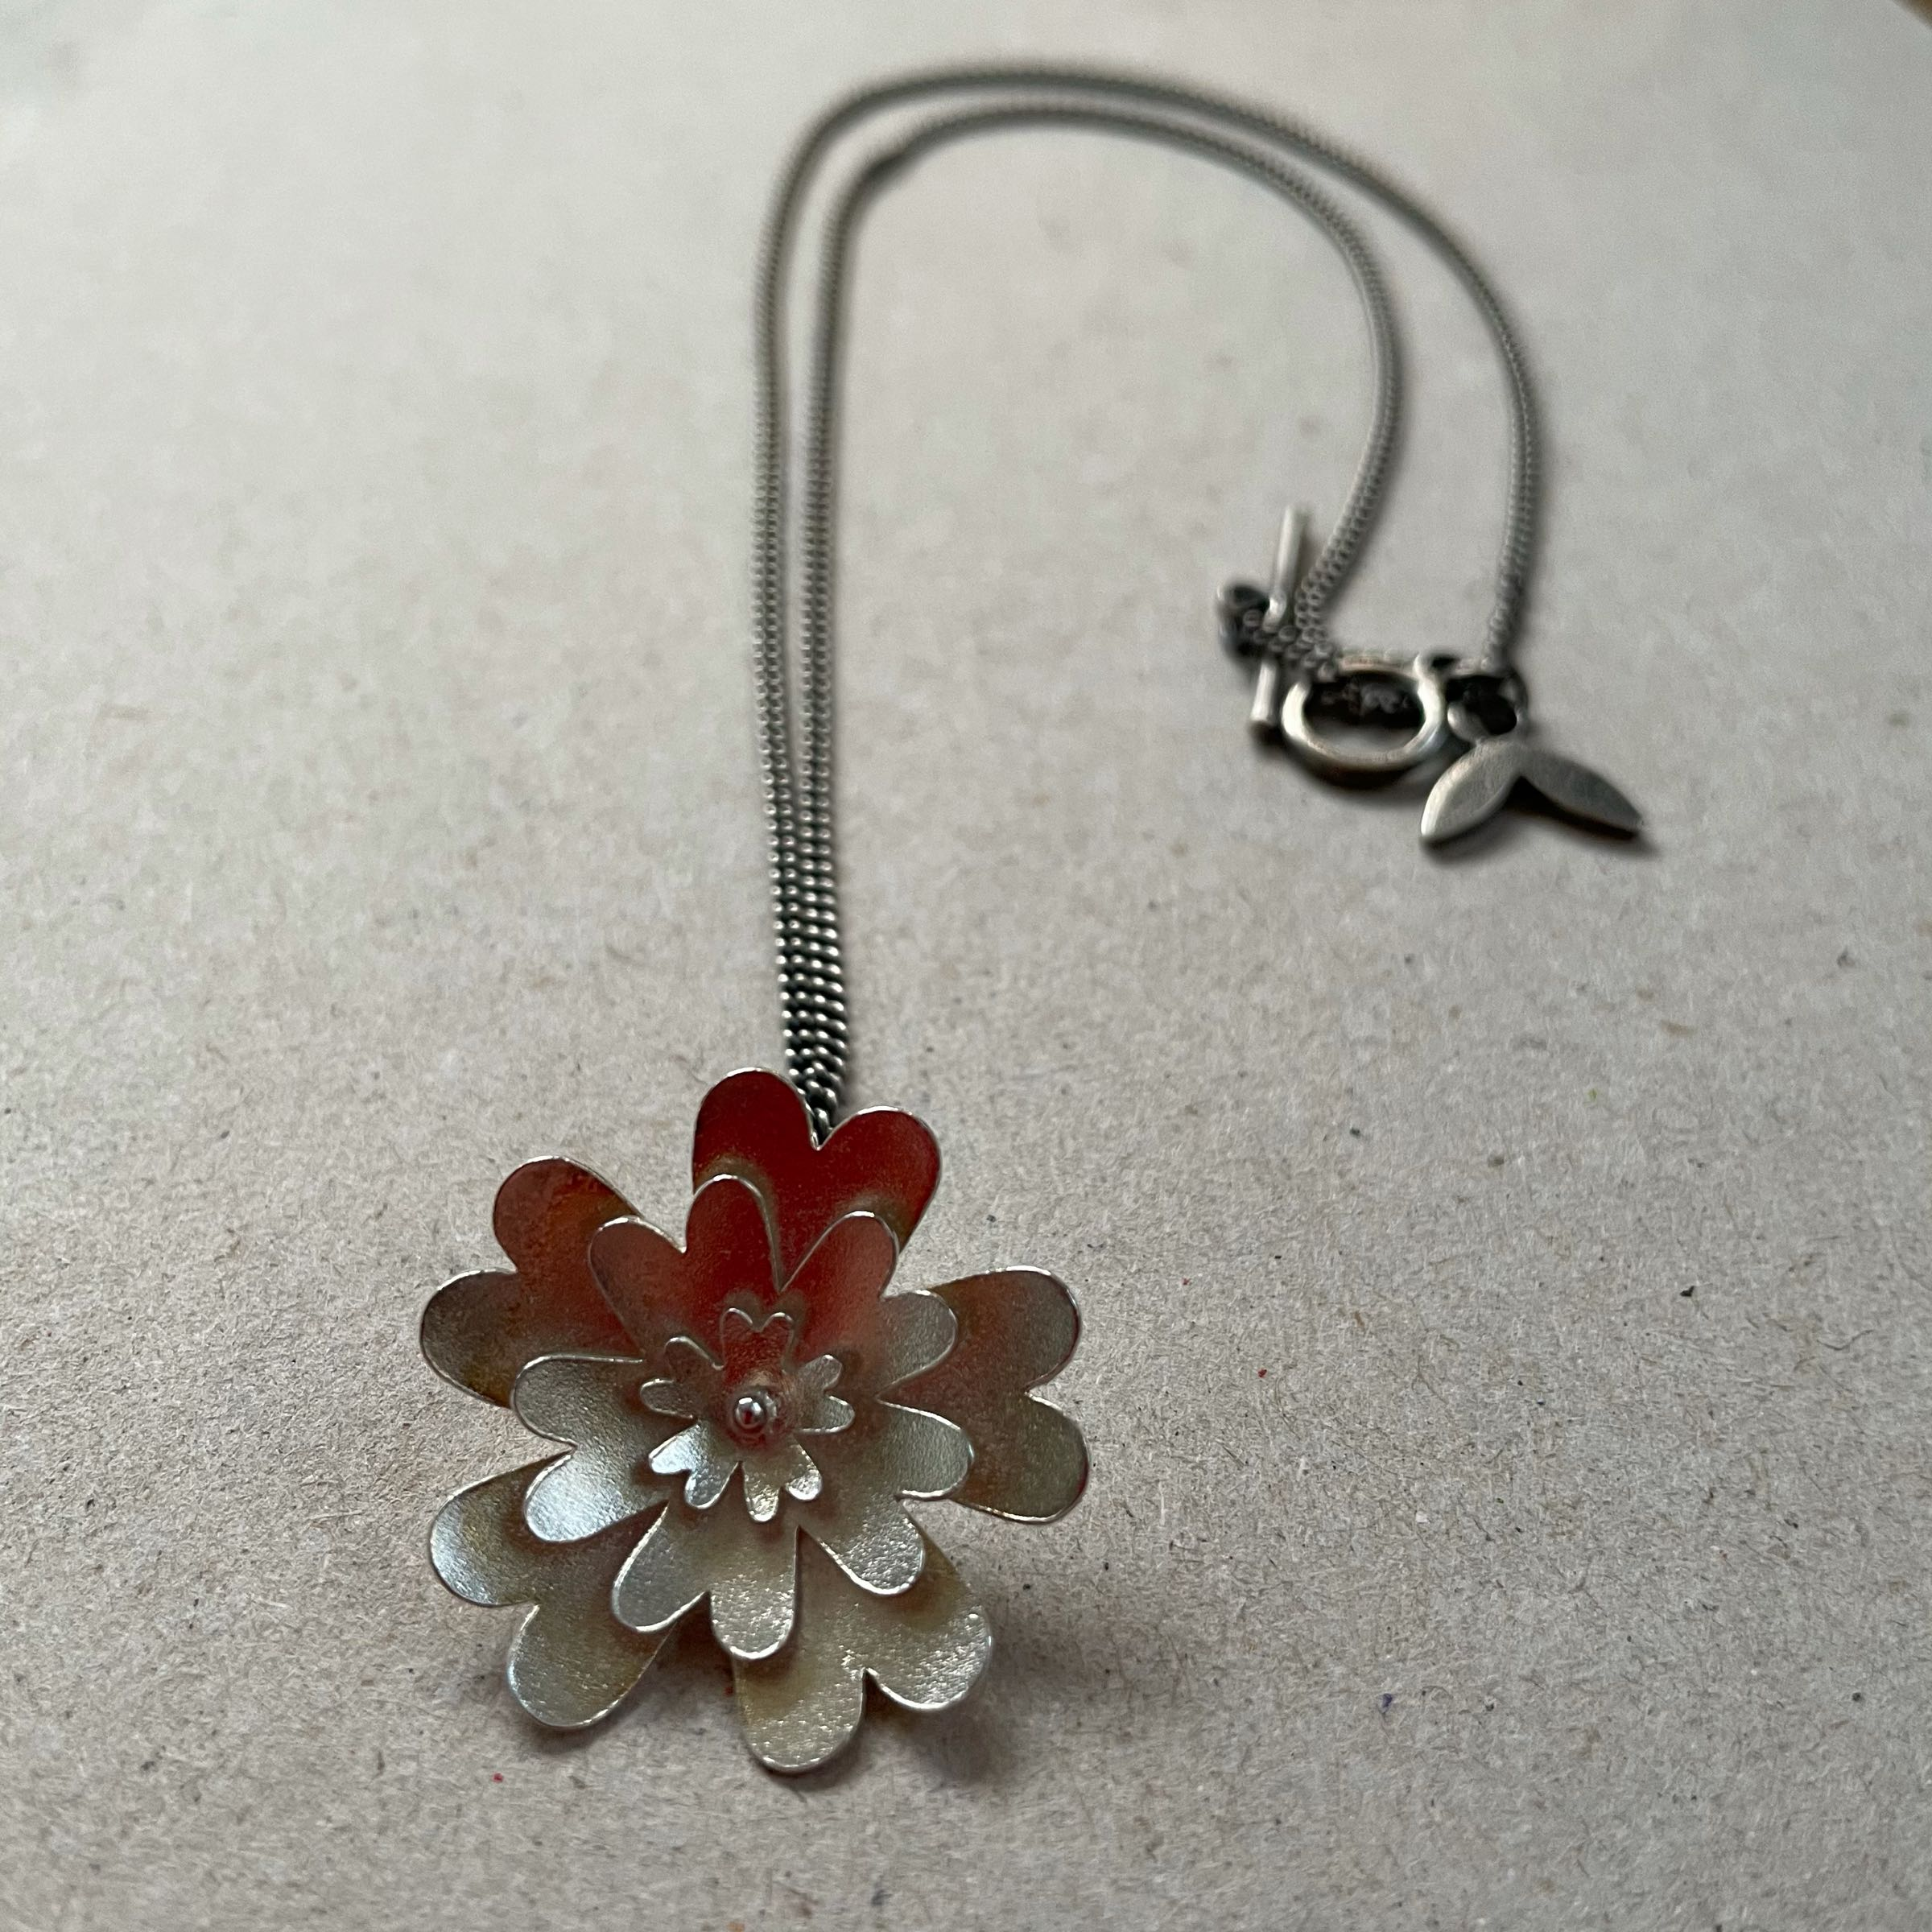 Verbena Bloom silver necklace by Suzanne Potter